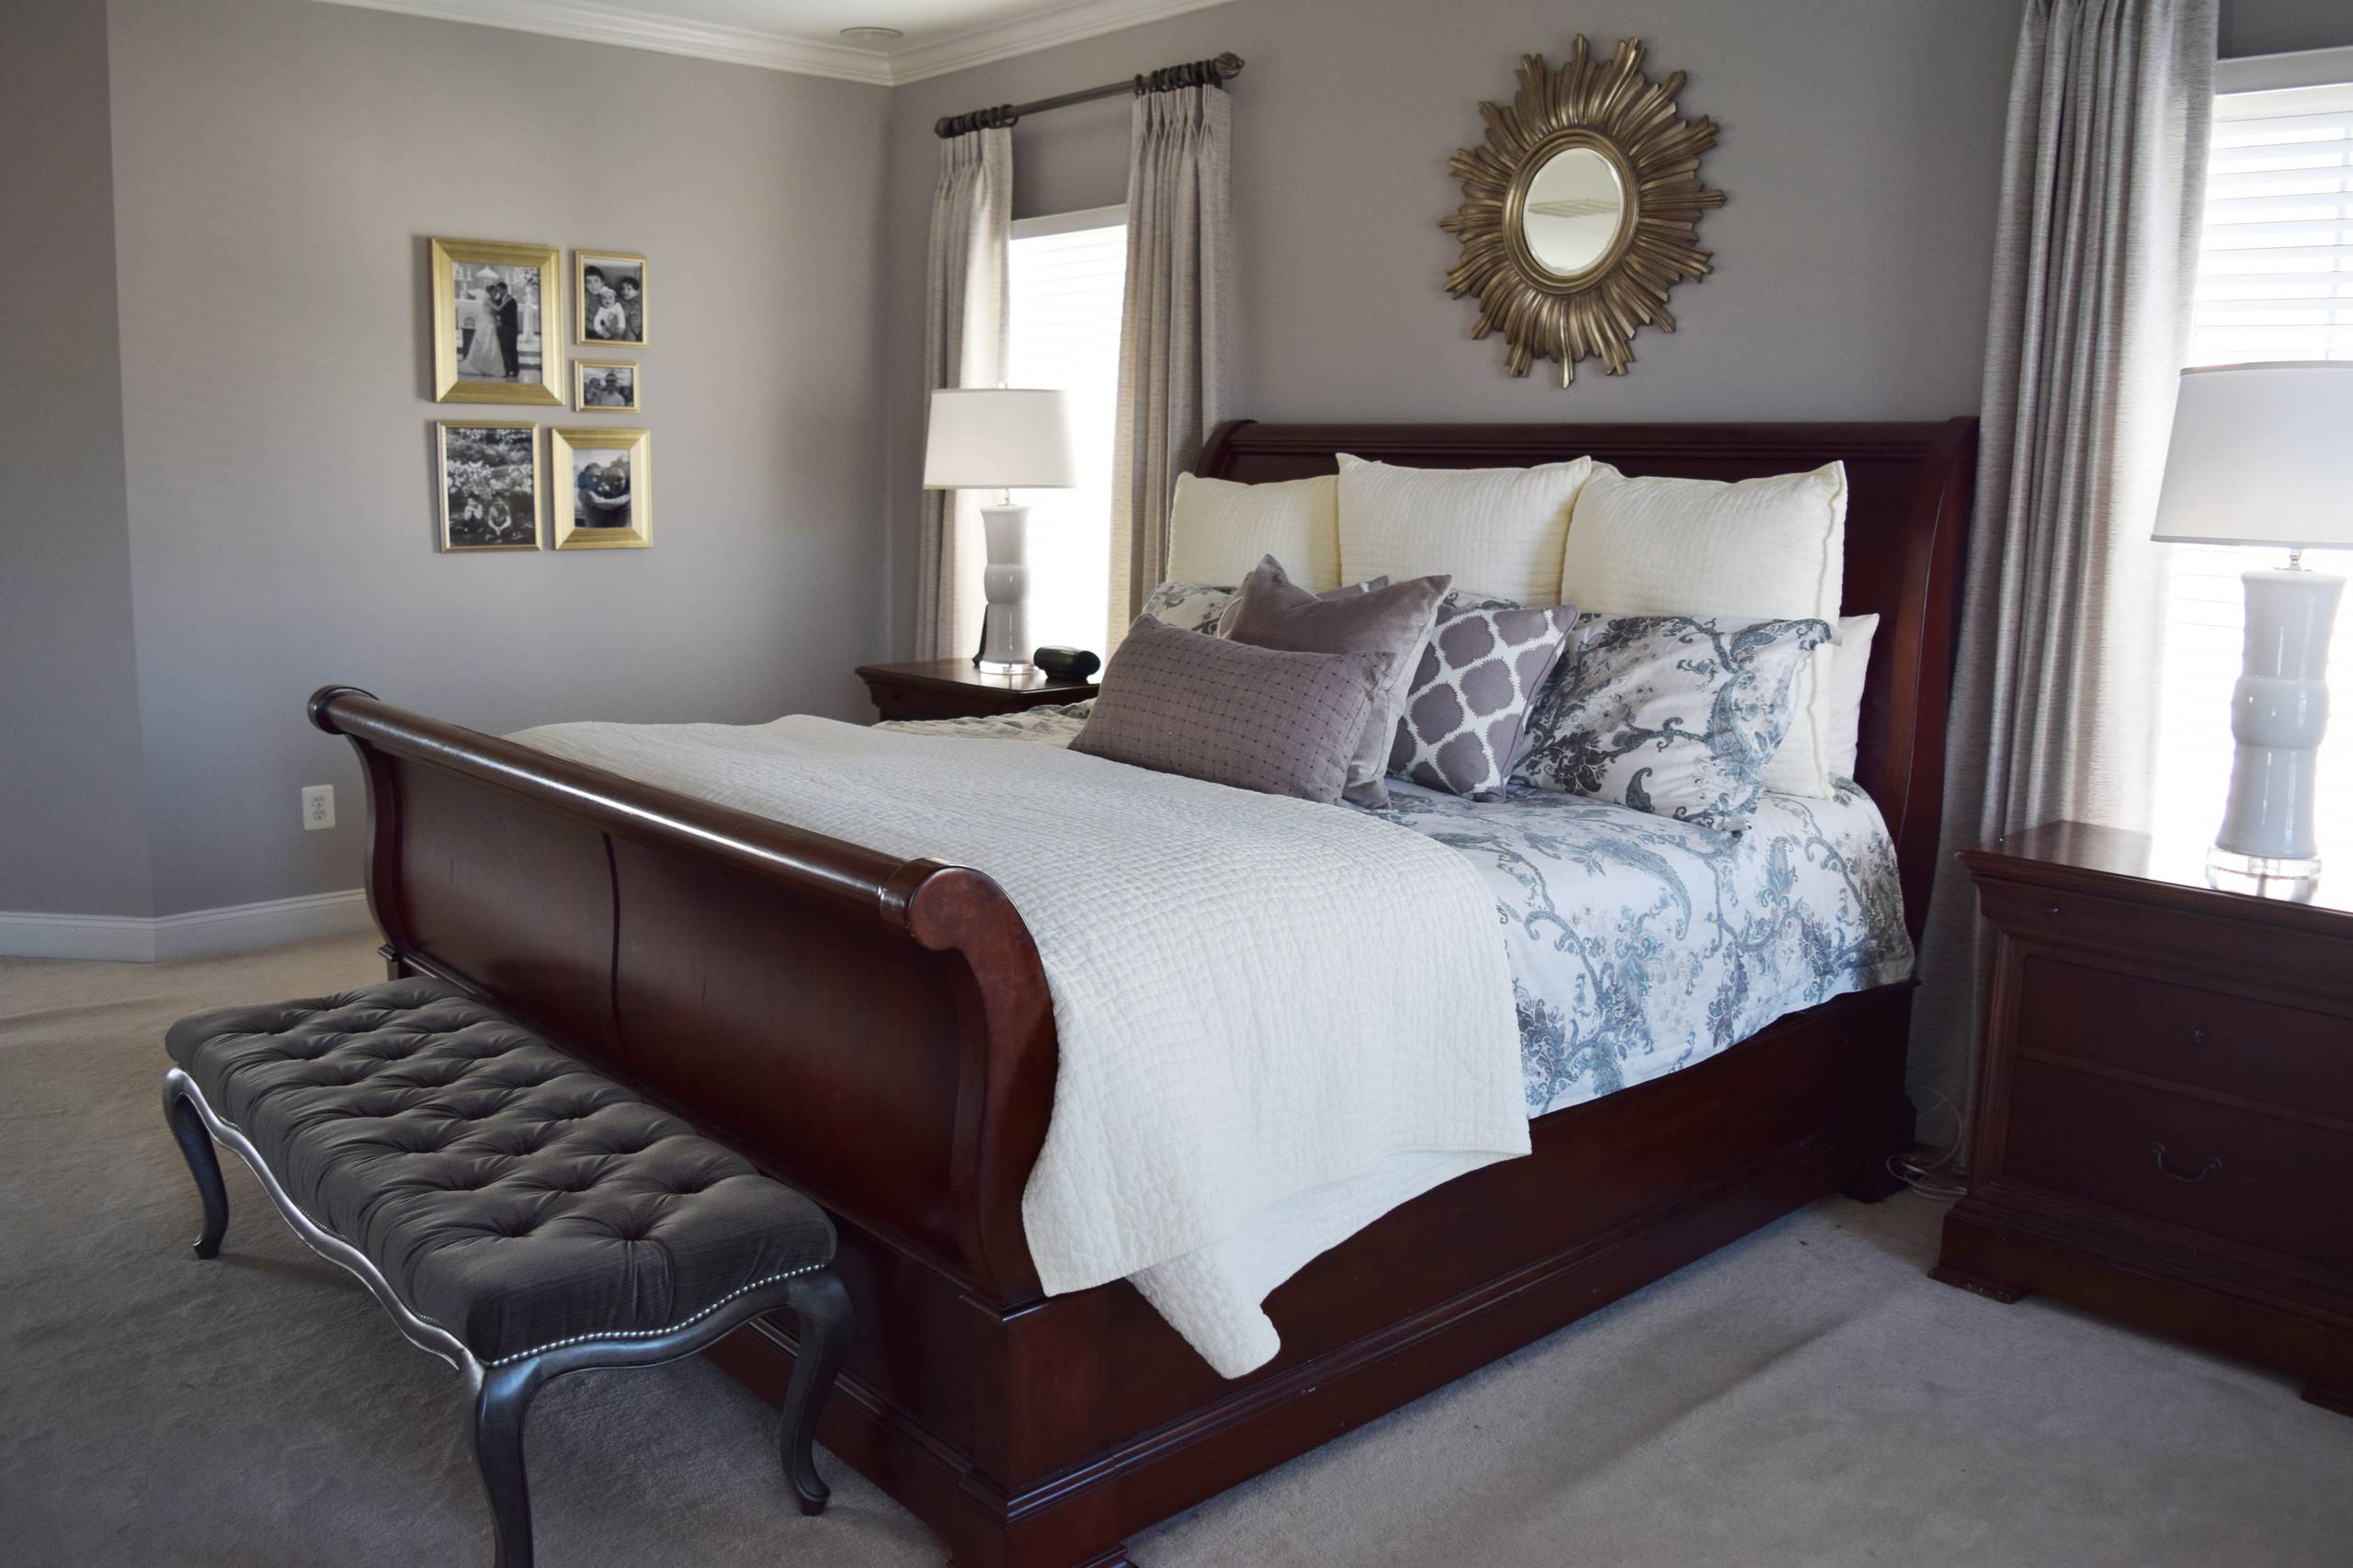 75 Beautiful Gray Bedroom With Purple Walls Pictures Ideas November 2020 Houzz